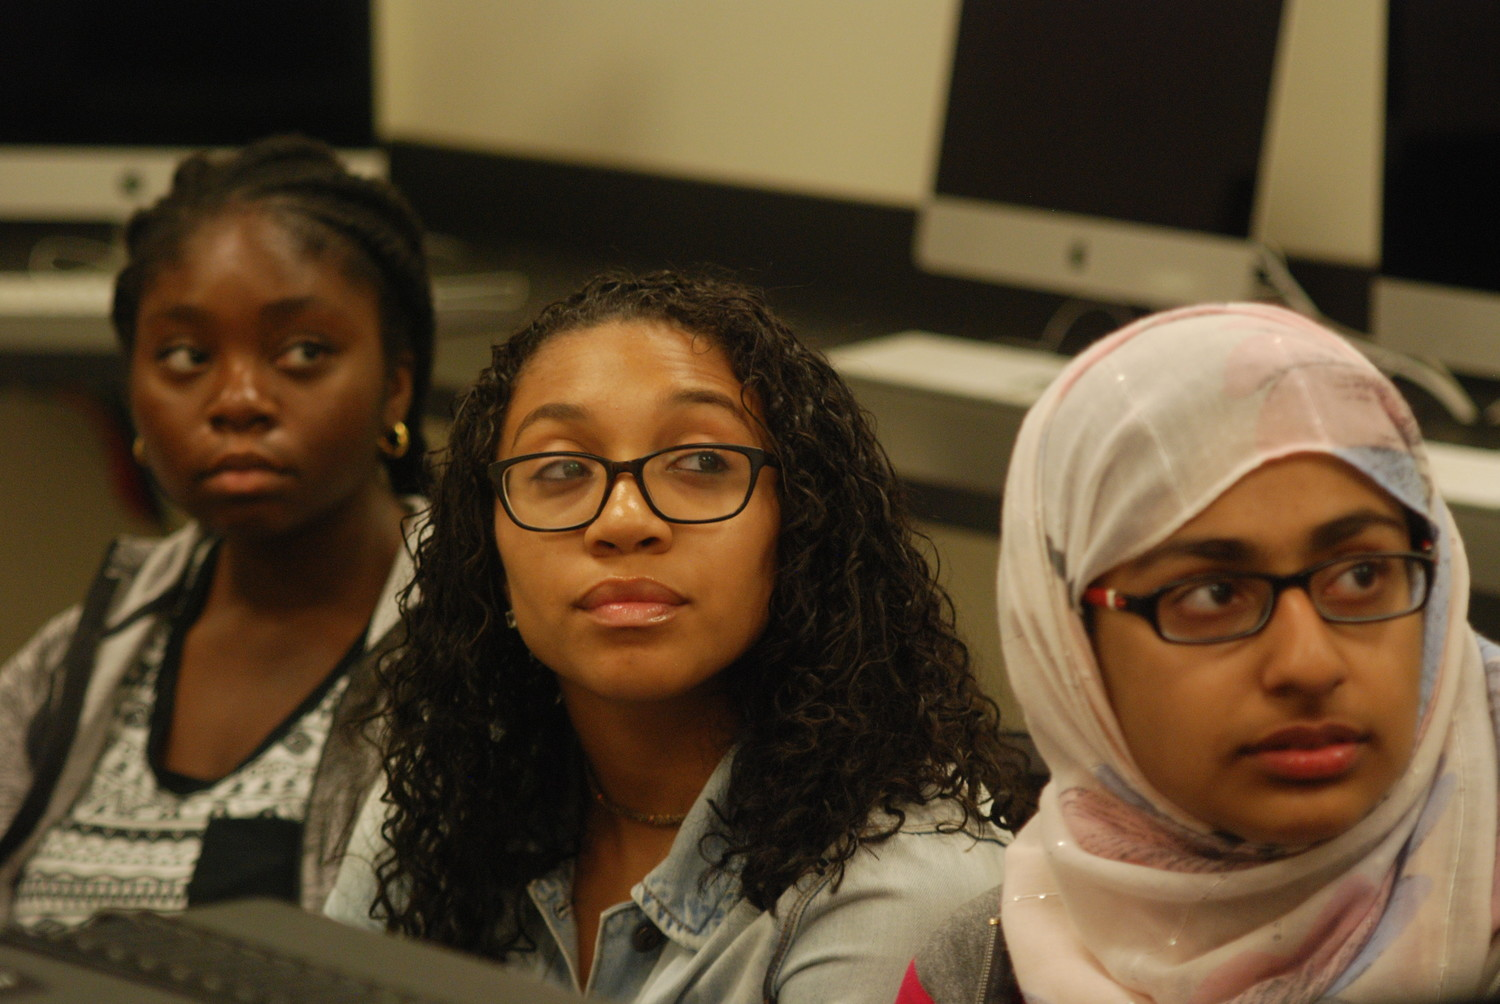 Abimbola Omotade, of Elmont, Maya Brown, of Freeport, and Laila Choudhry, Elmont High School 2018 salutatorian, were among the 10 participants in Hofstra's recent High School Summer Journalism Institute. They were shown above during a photography class.